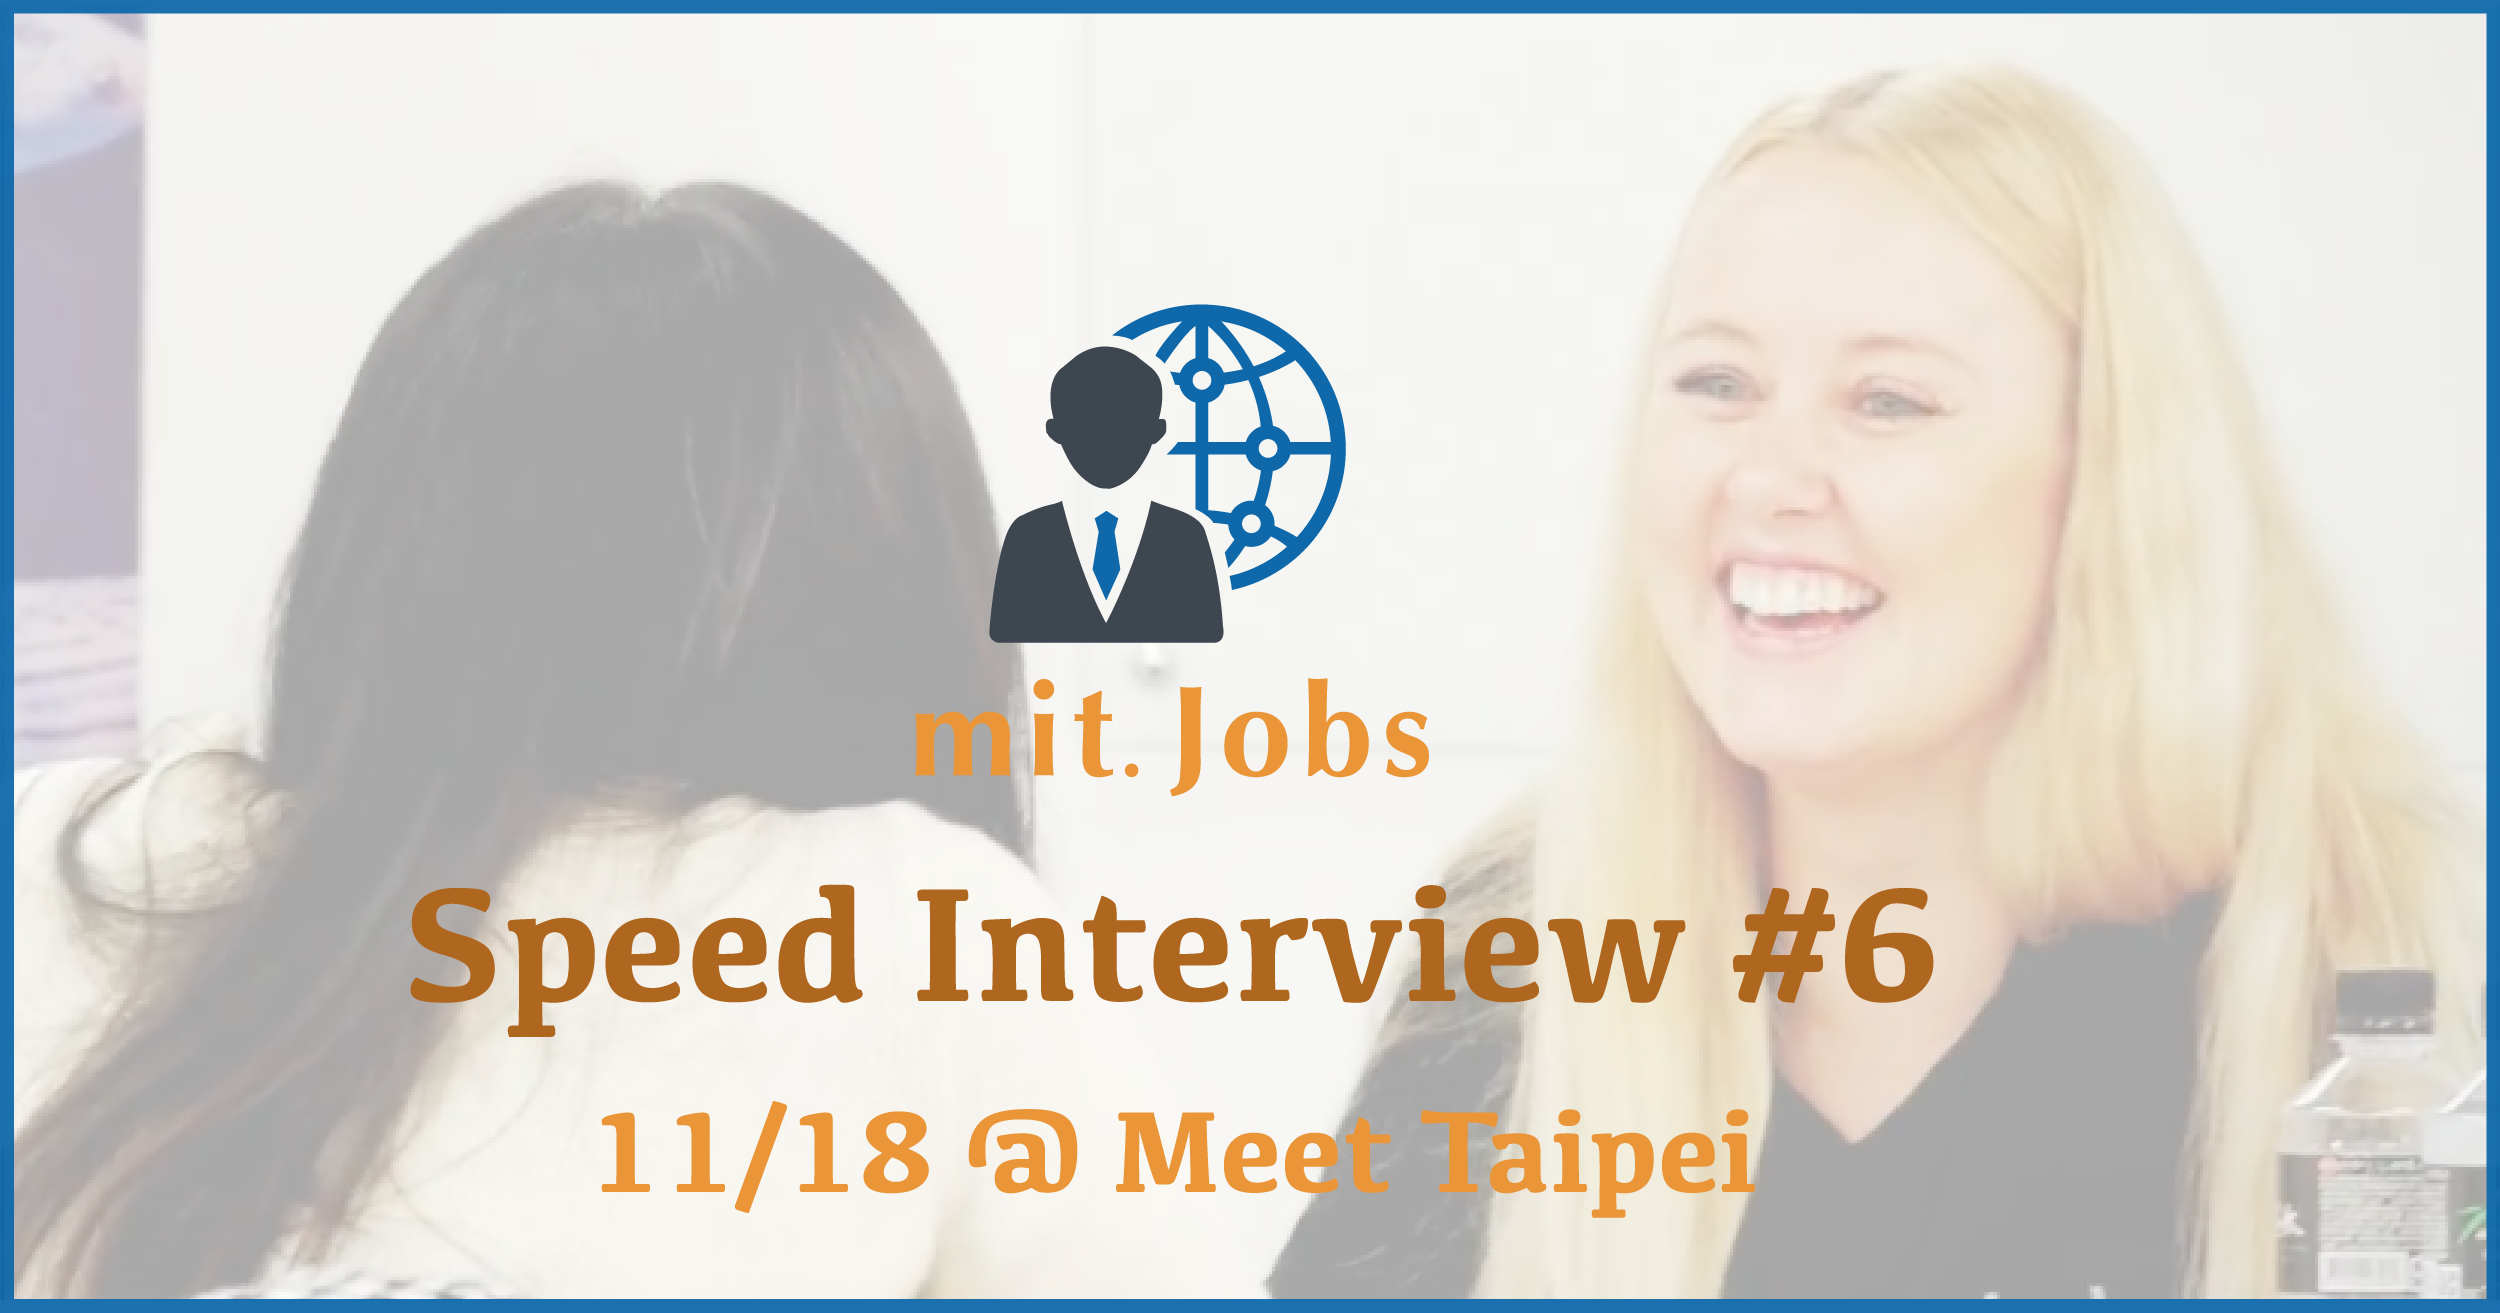 Speed interview   nov17 mit event page